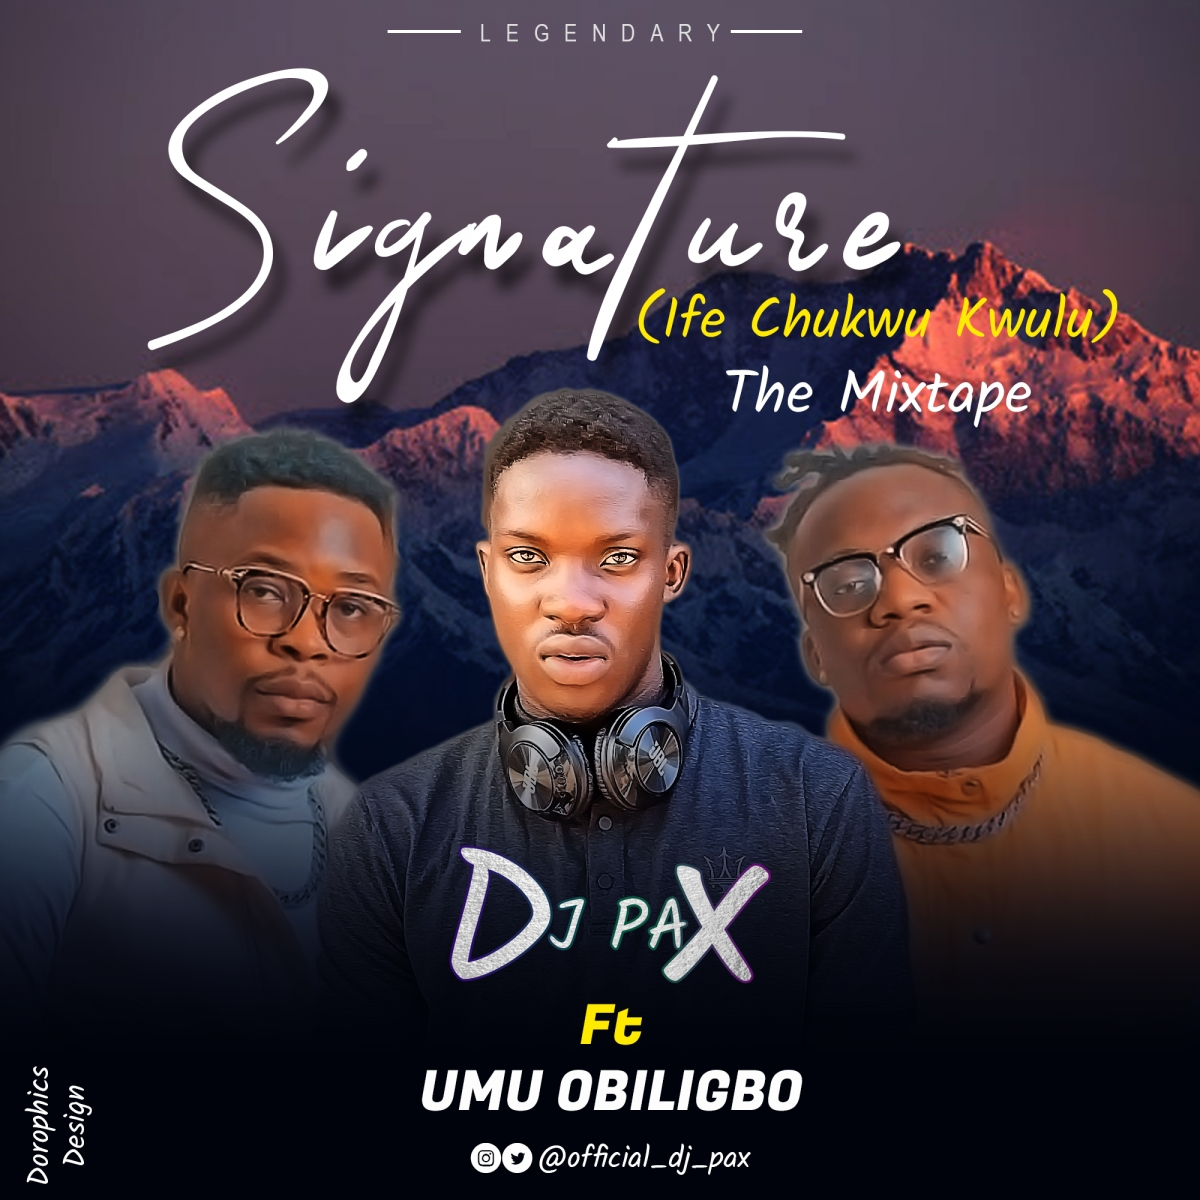 Signature The Mixtape - DJ Pax ft. Umu Obiligbo